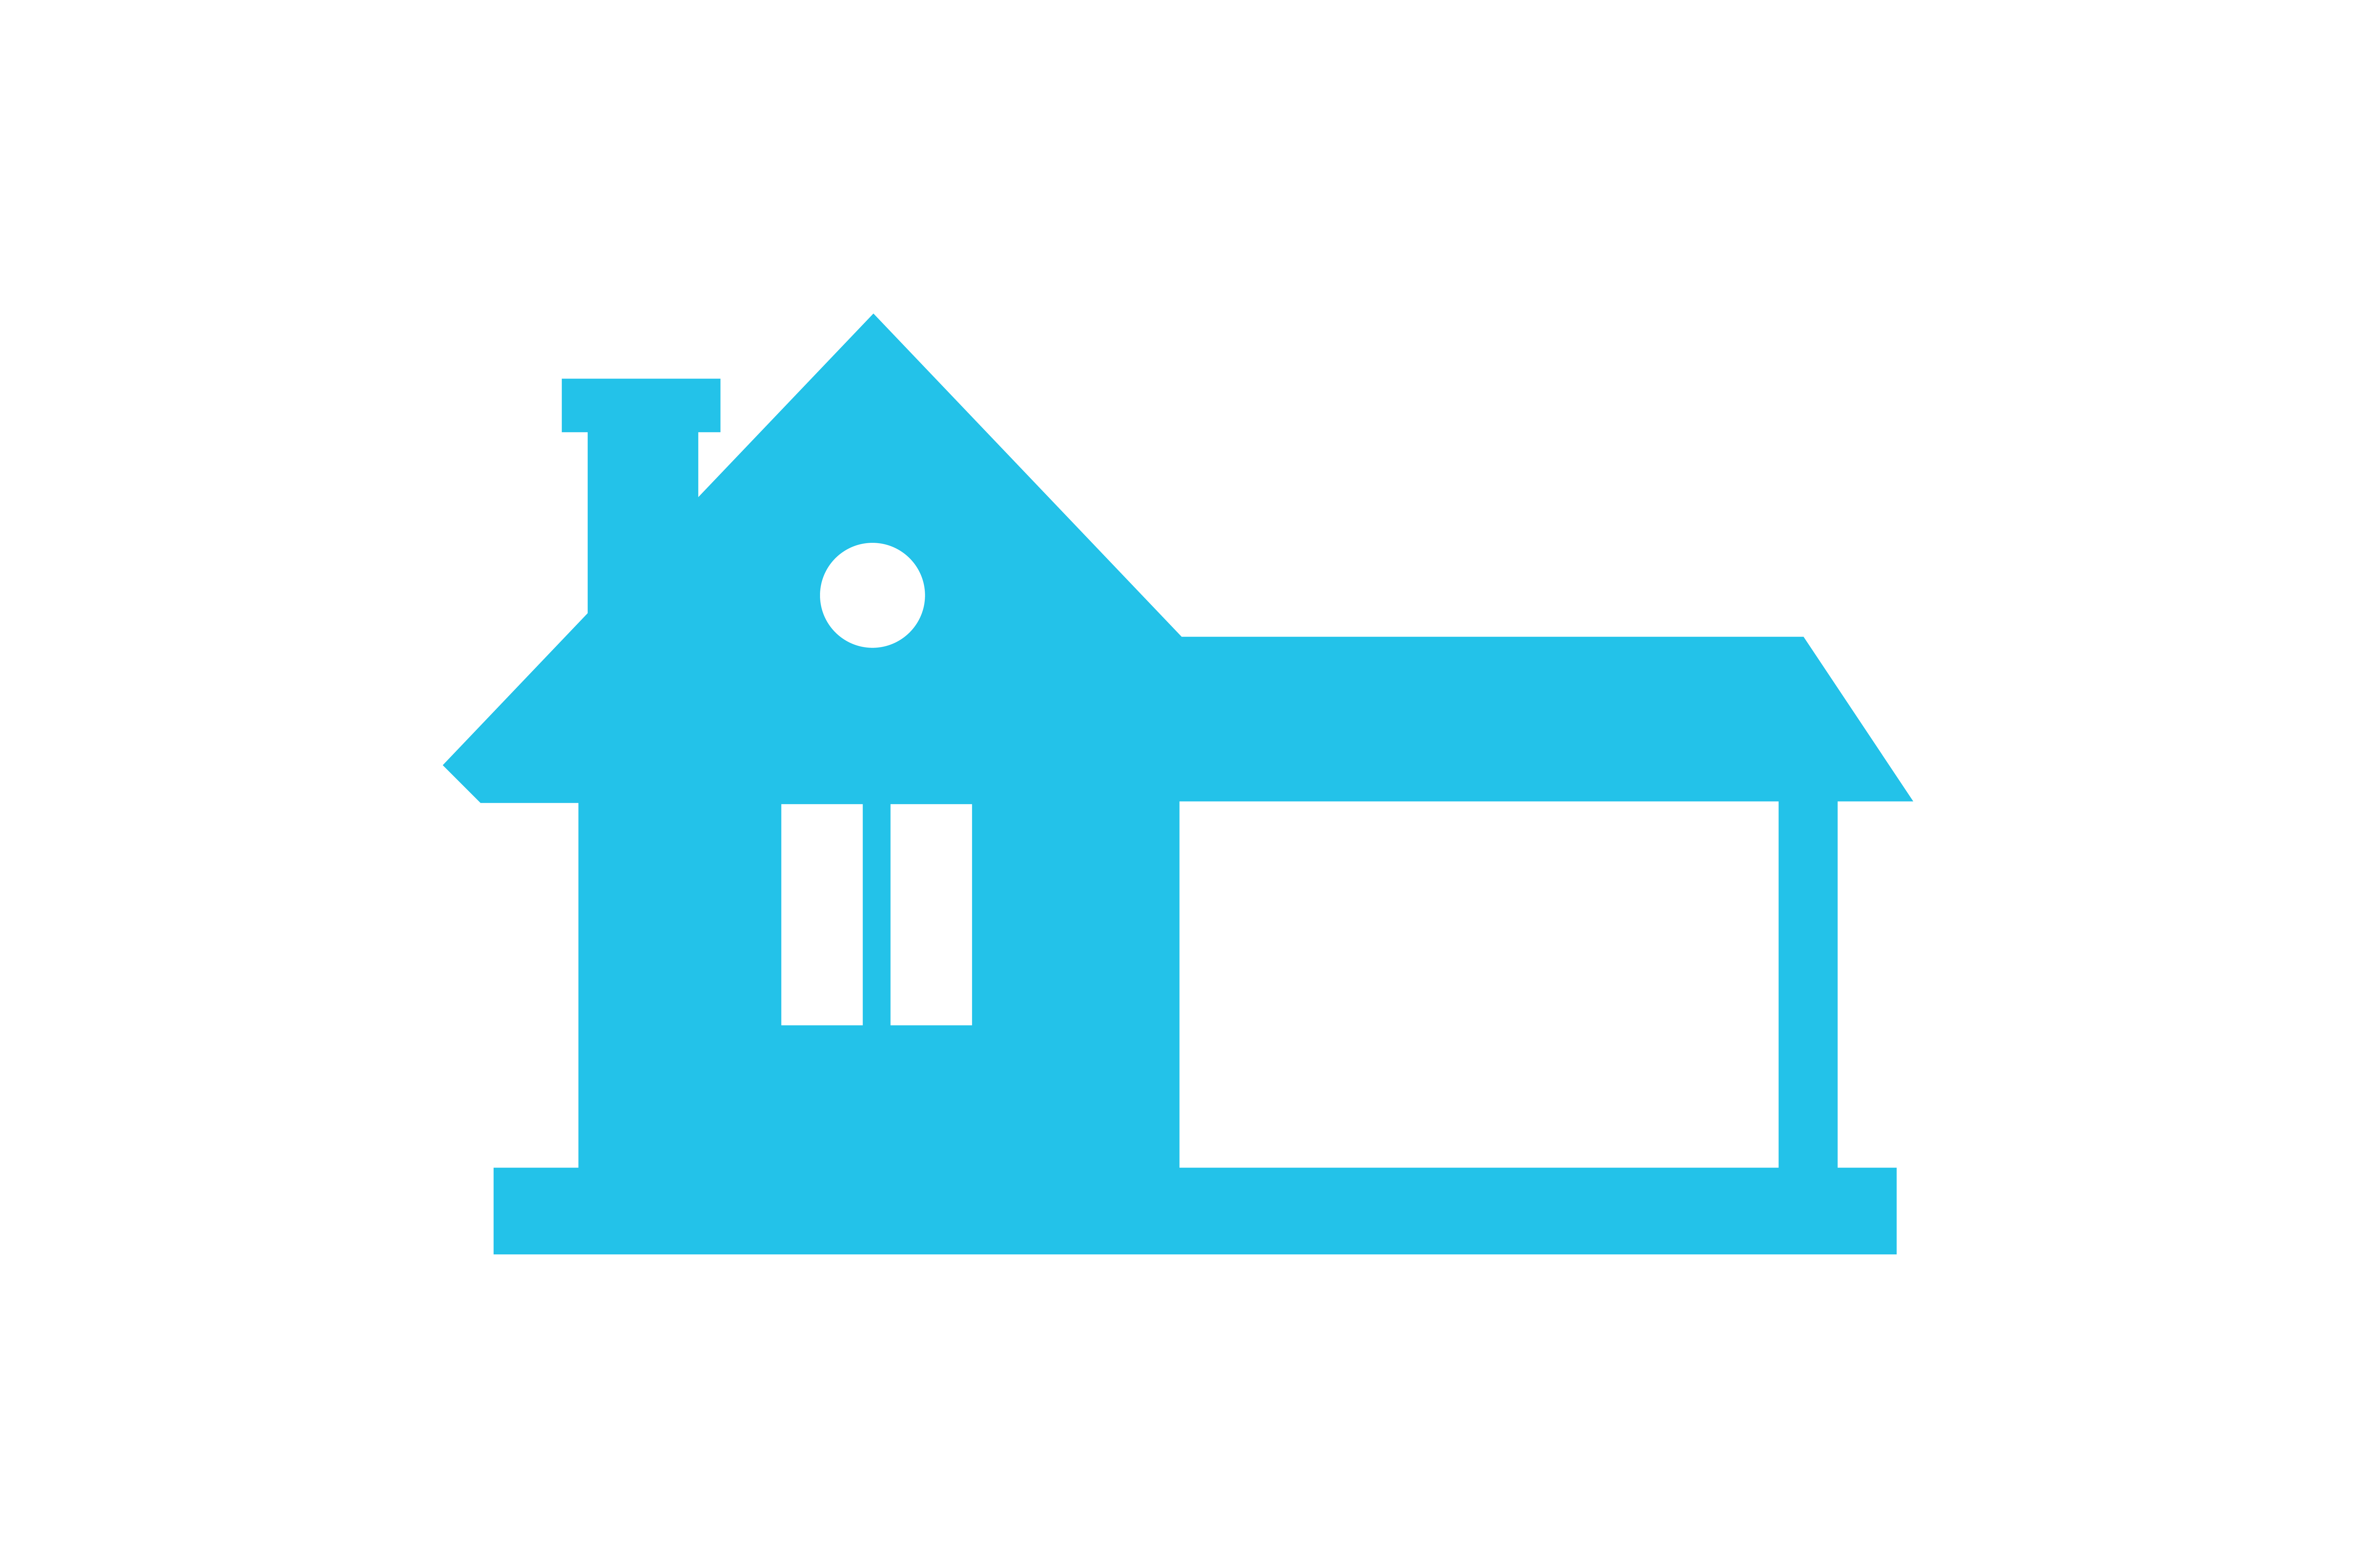 Download Free Building Icon Graphic By Zafreeloicon Creative Fabrica for Cricut Explore, Silhouette and other cutting machines.